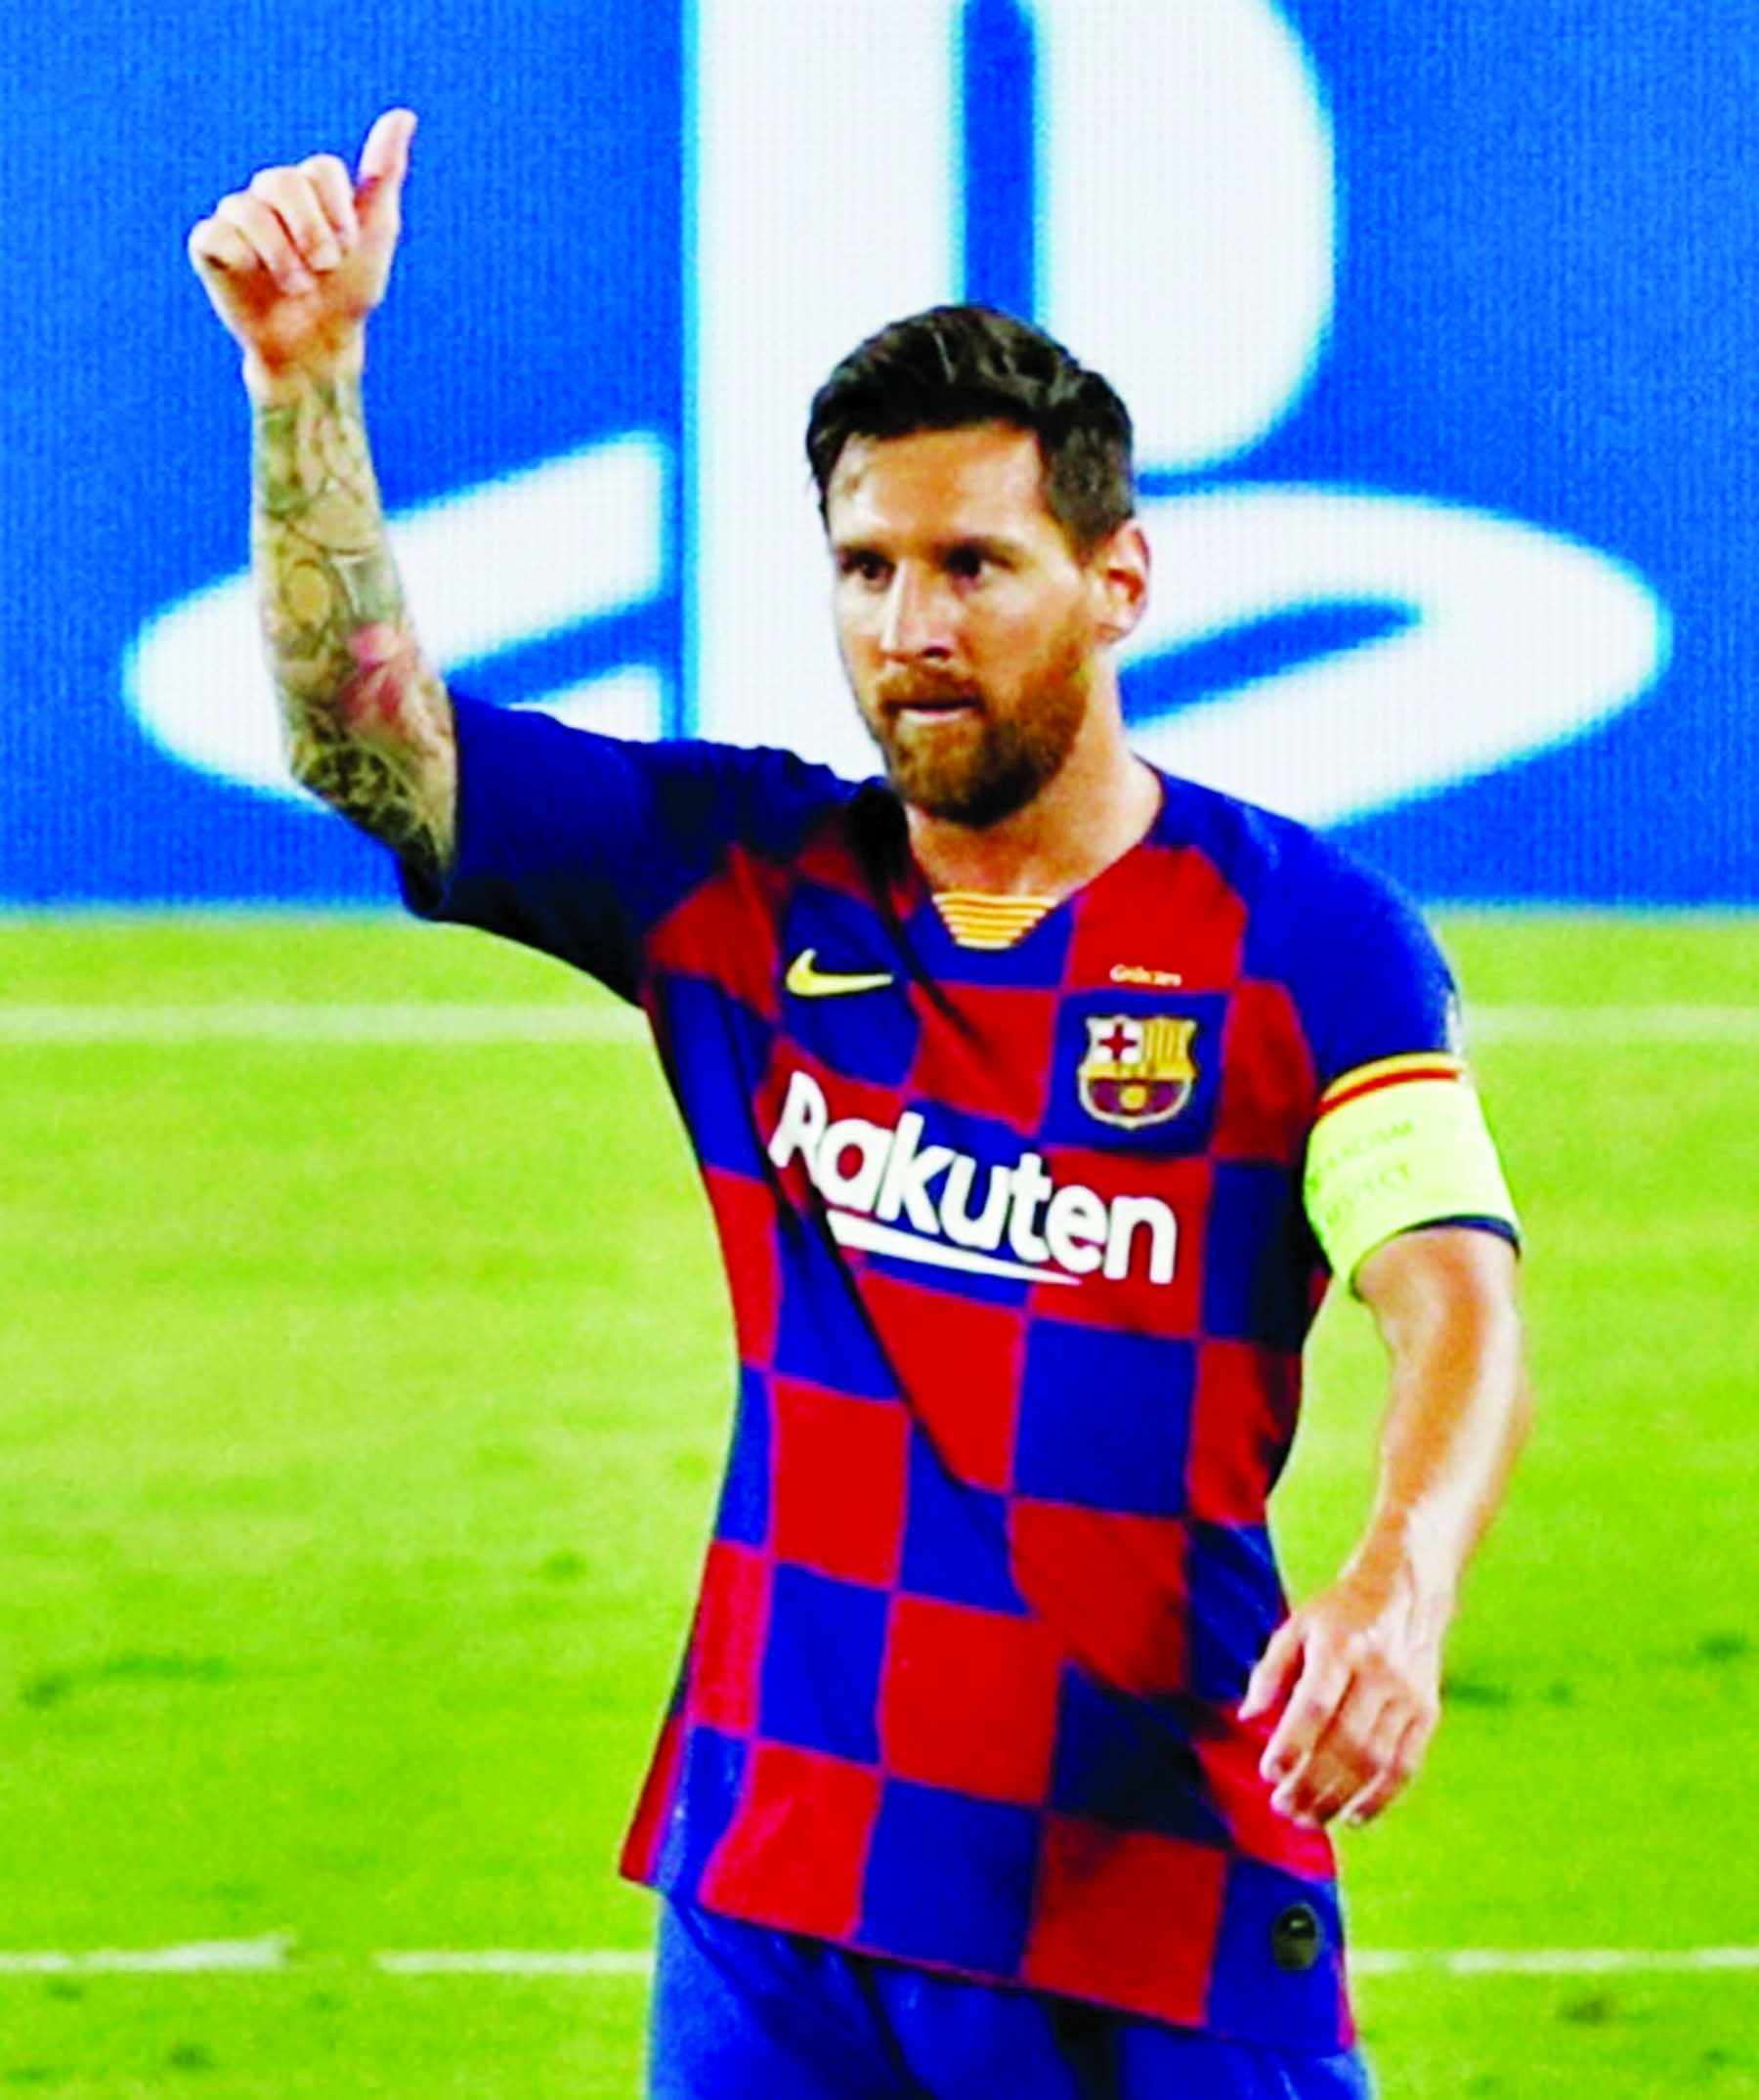 Barca meal could spell trouble for Messi over health protocol breach